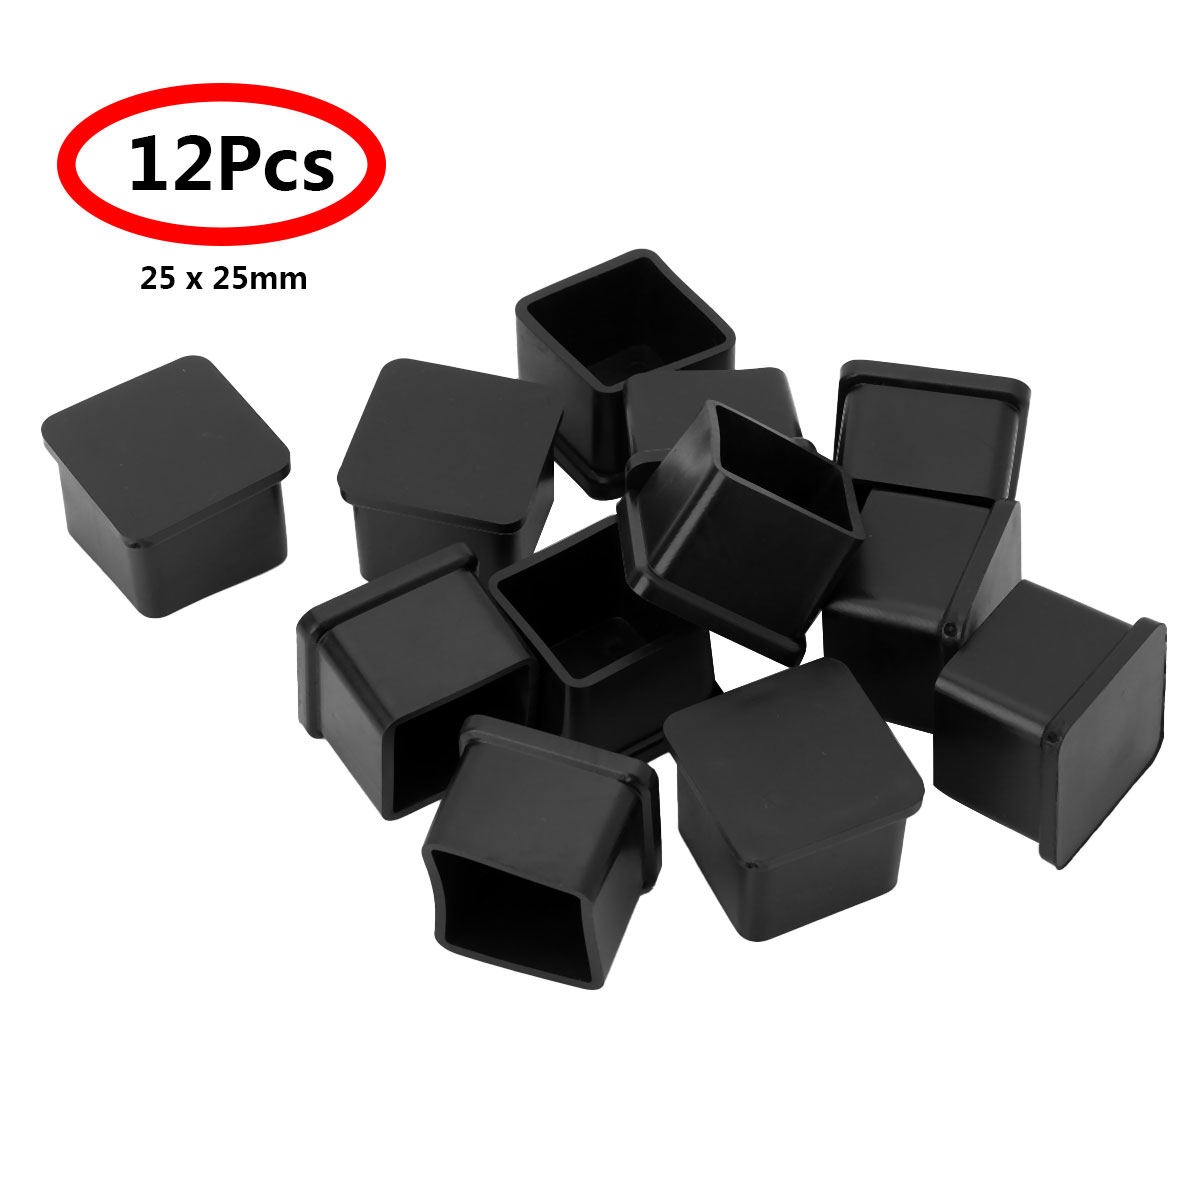 12Pcs Chair <font><b>leg</b></font> caps Covers Square Shaped PVC <font><b>Rubber</b></font> Furniture Foot <font><b>Table</b></font> Chair <font><b>Leg</b></font> End Caps Covers Tips Floor Protectors image